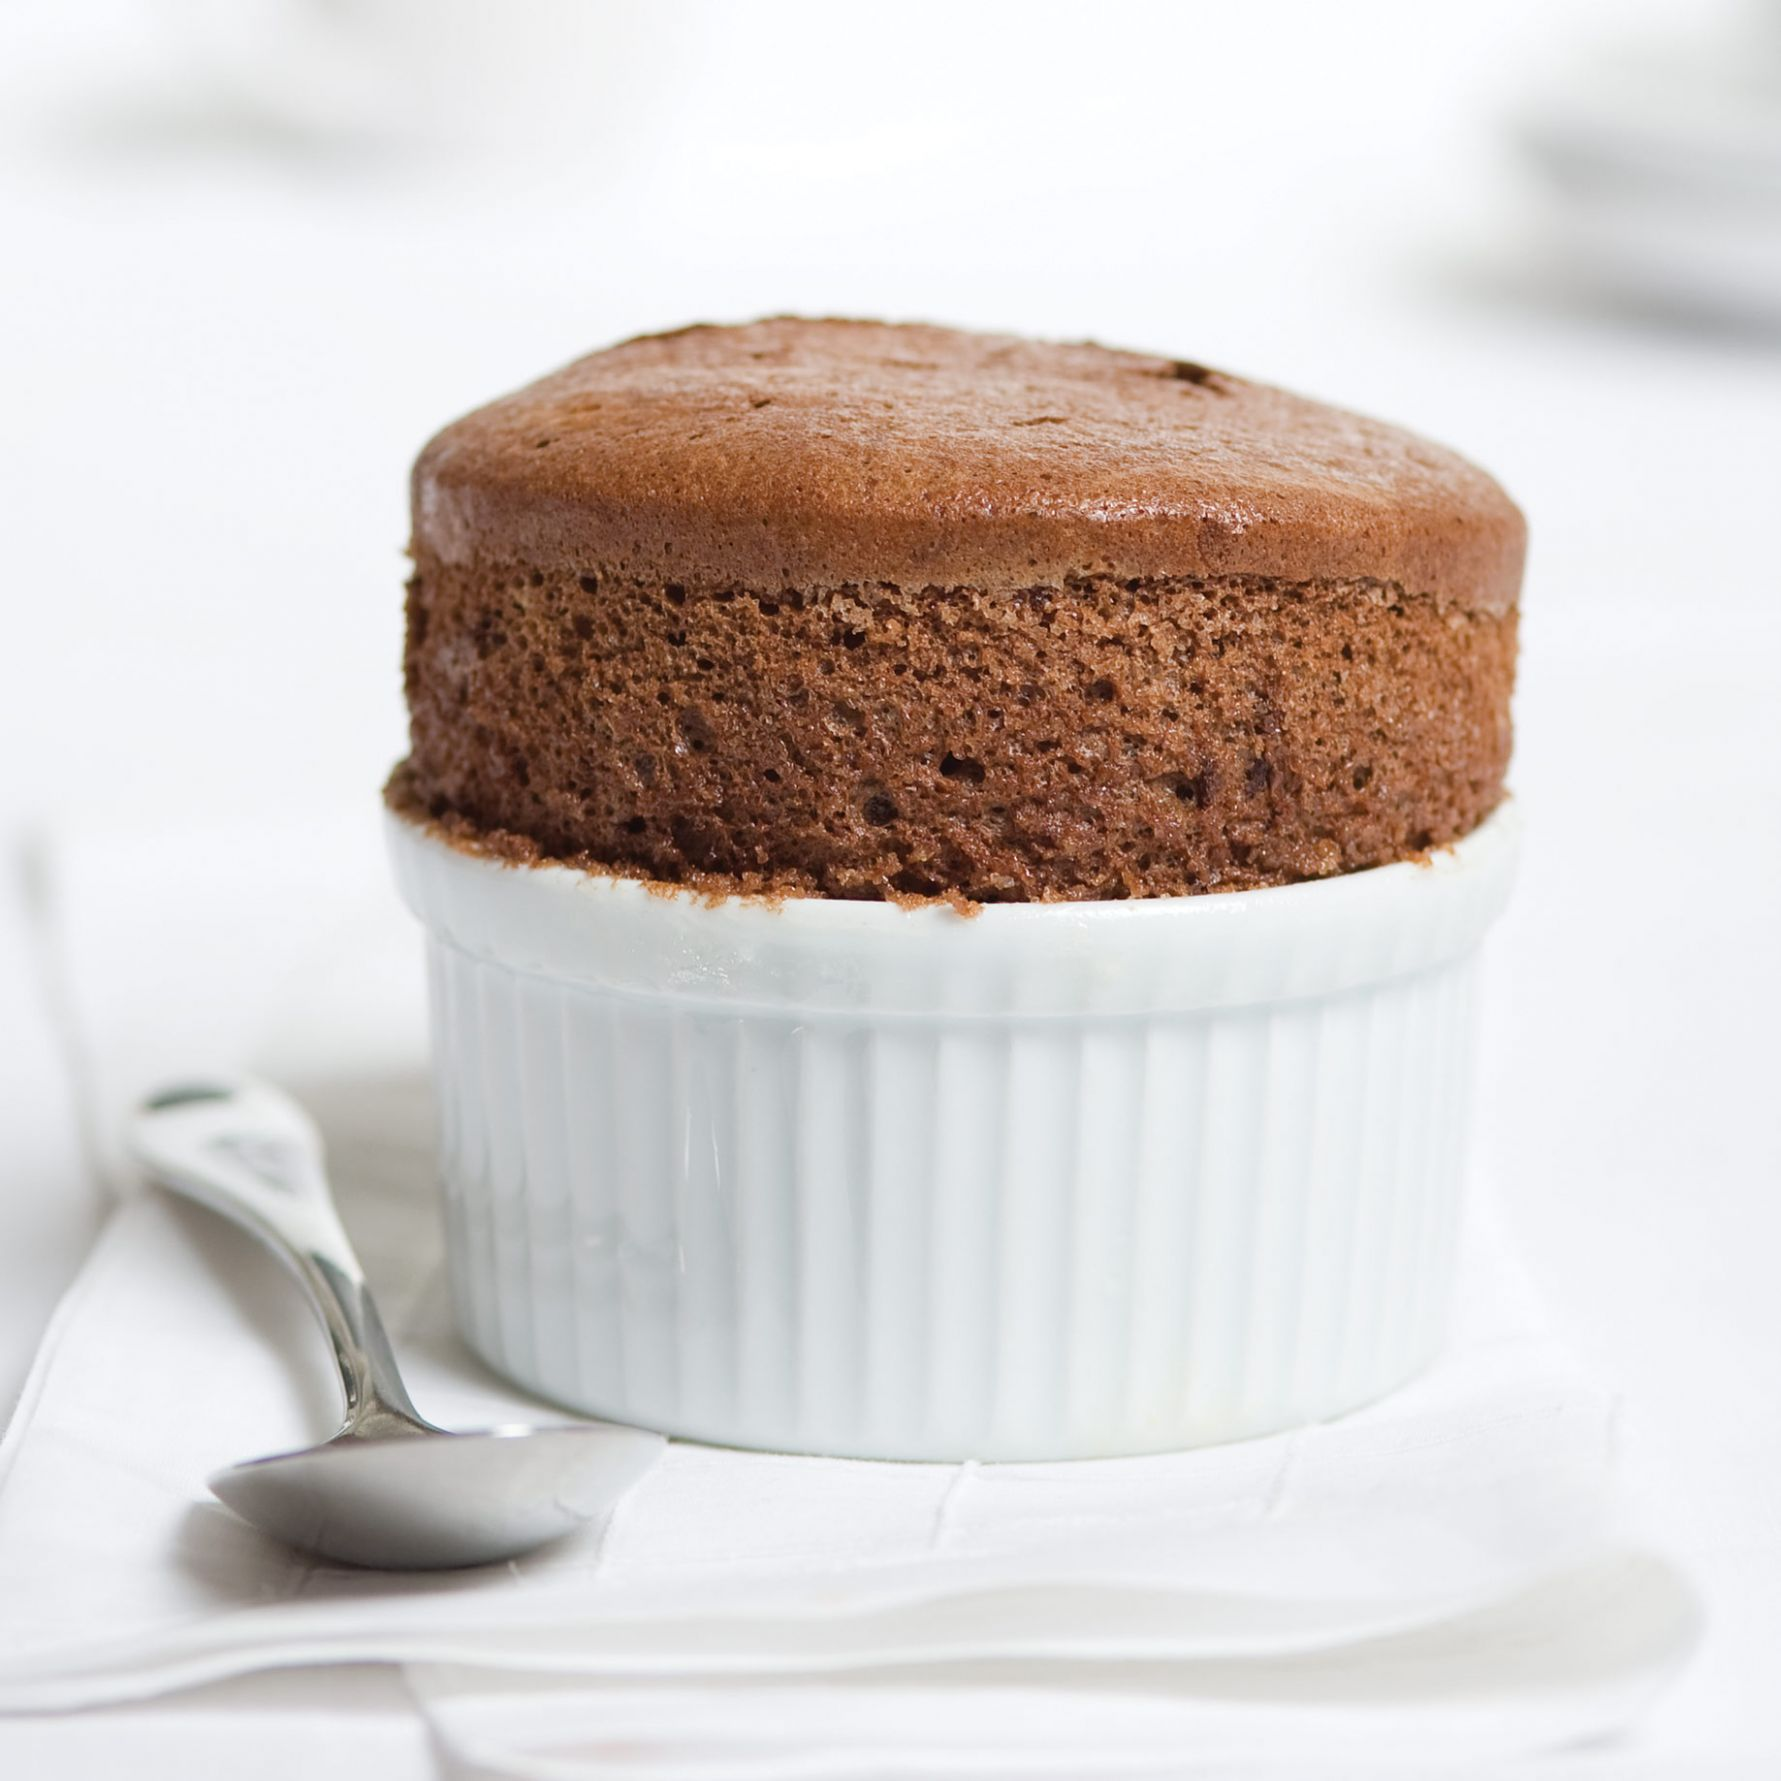 Make-Ahead Chocolate Souffle - Recipes Chocolate Souffle